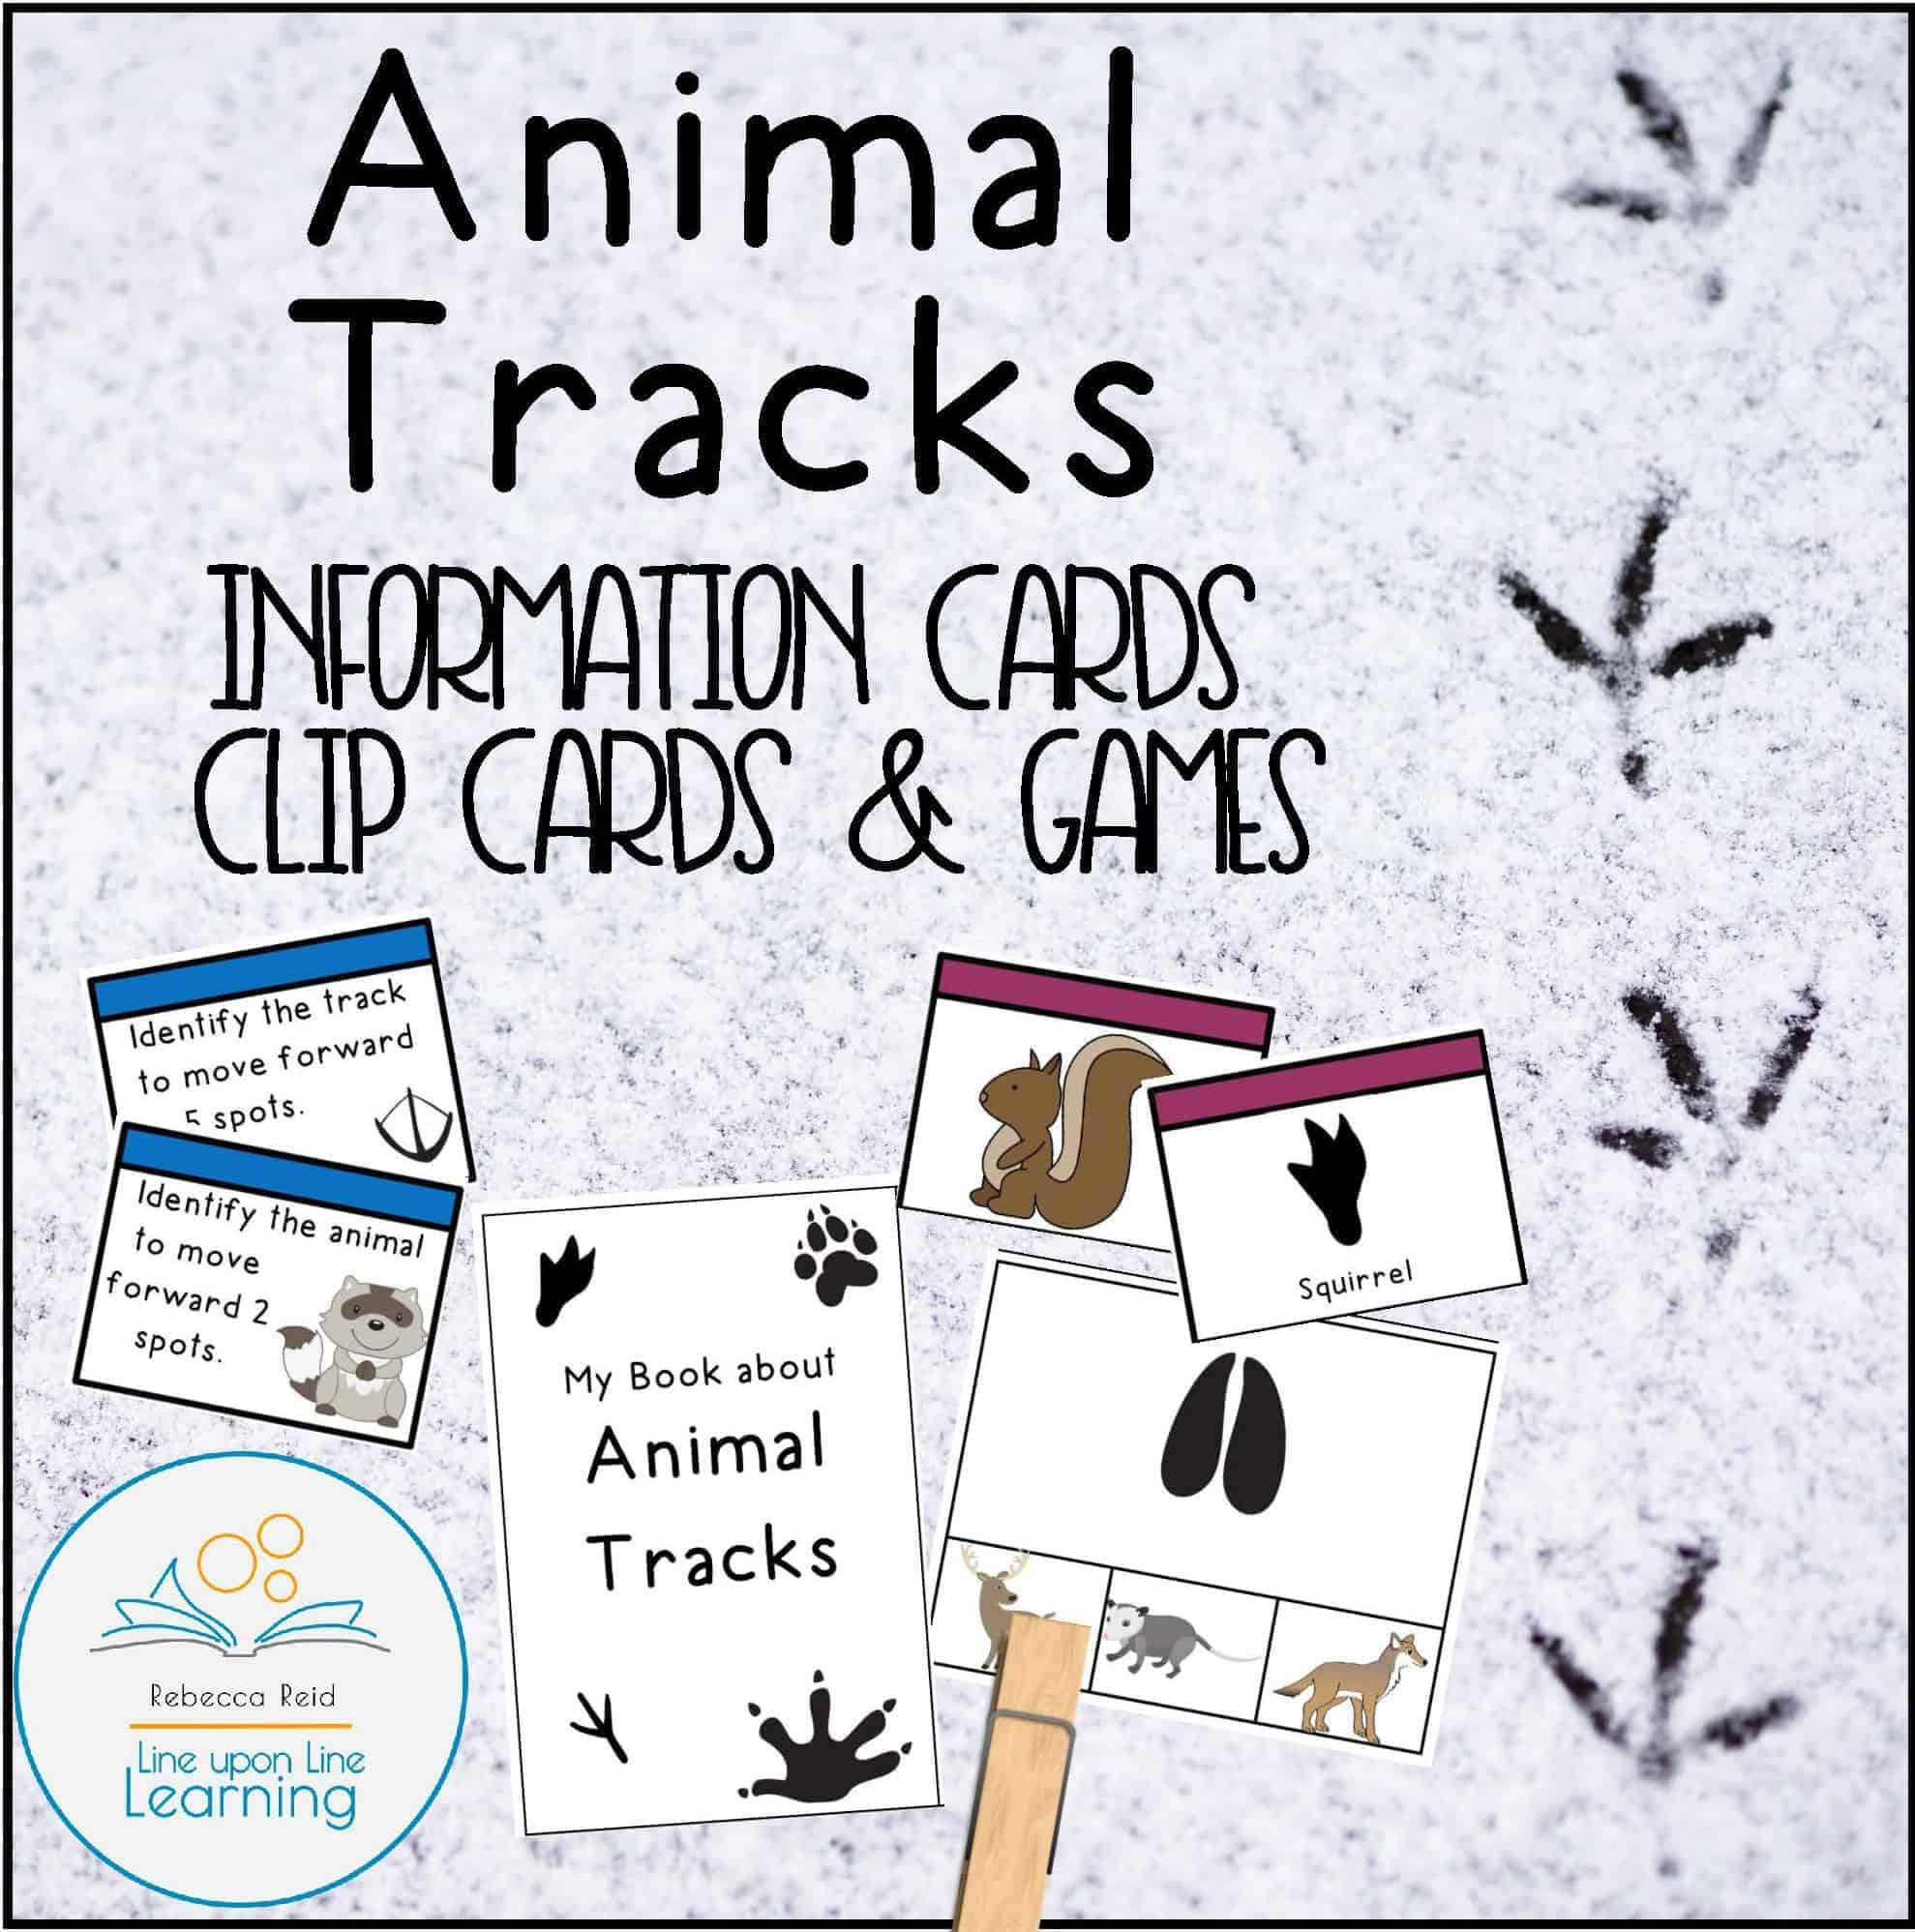 Animal Tracks Information Cards Clip Cards And Games Line Upon Line Learning [ 1997 x 1979 Pixel ]